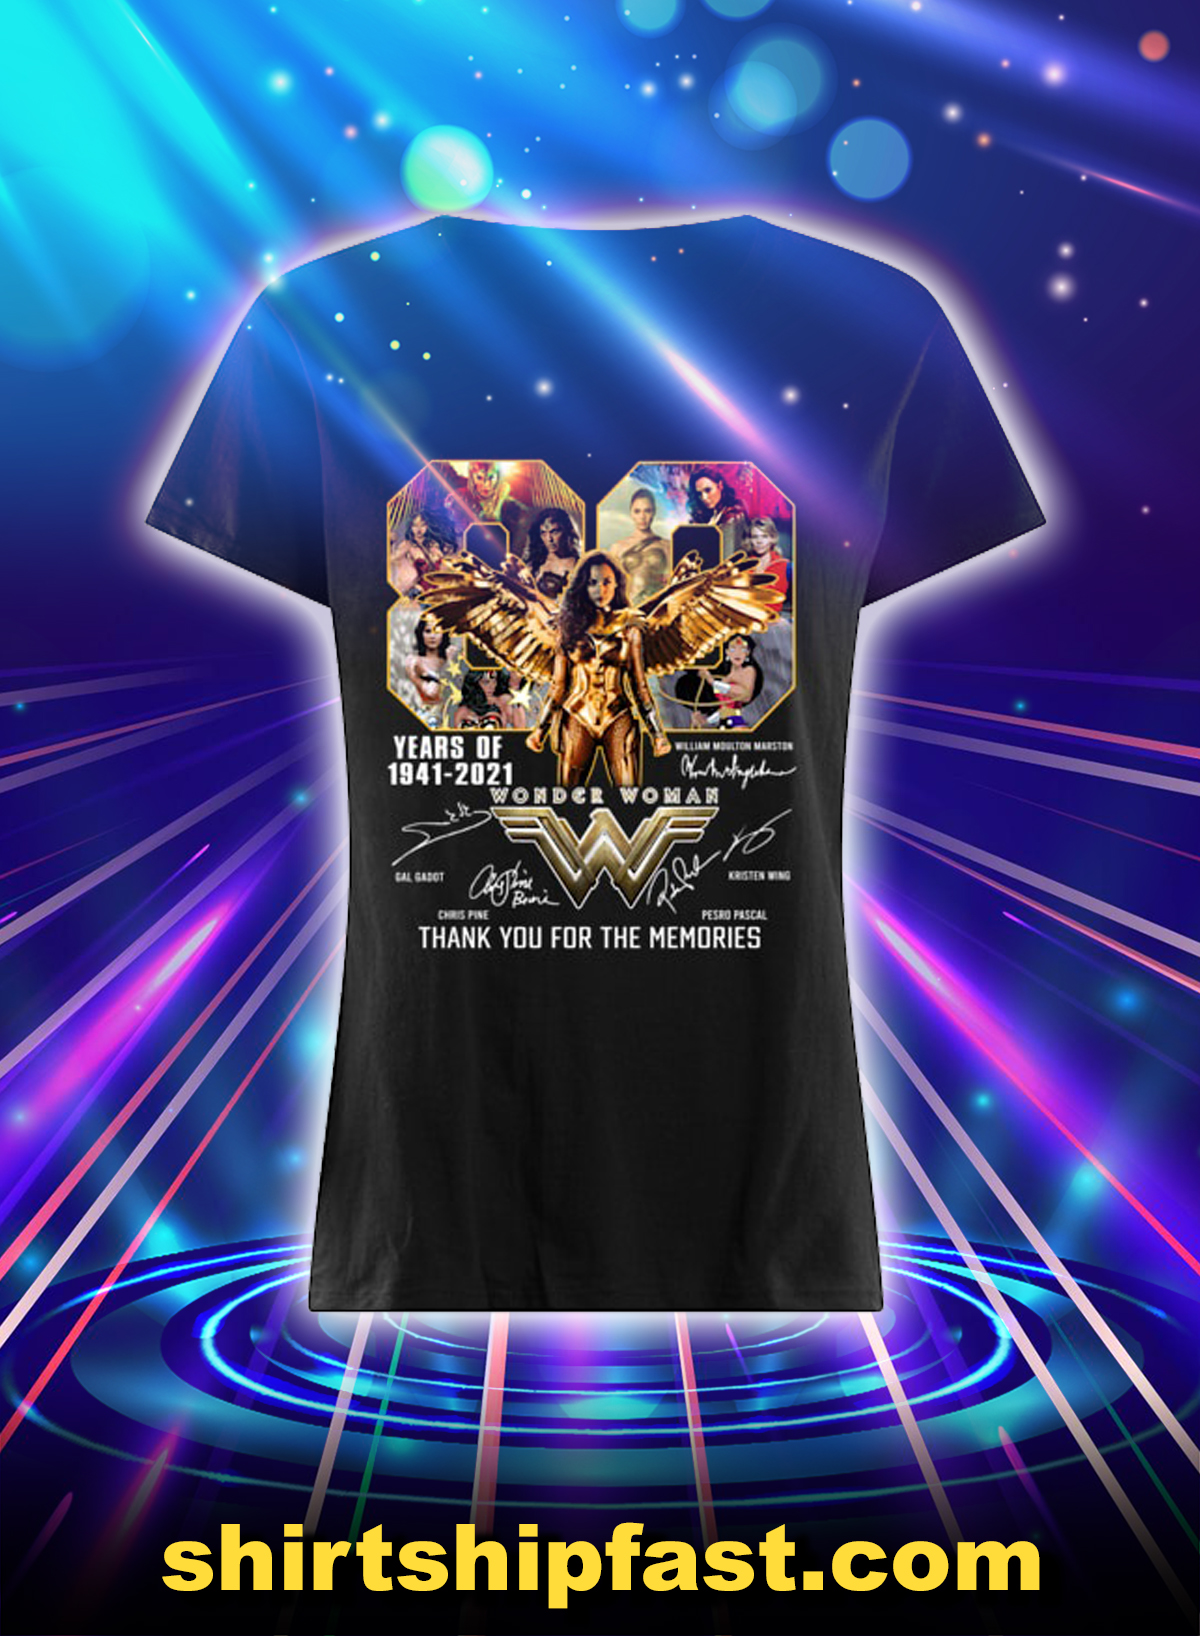 Wonder woman 80 years of 1841 2021 thank you for the memories lady shirt